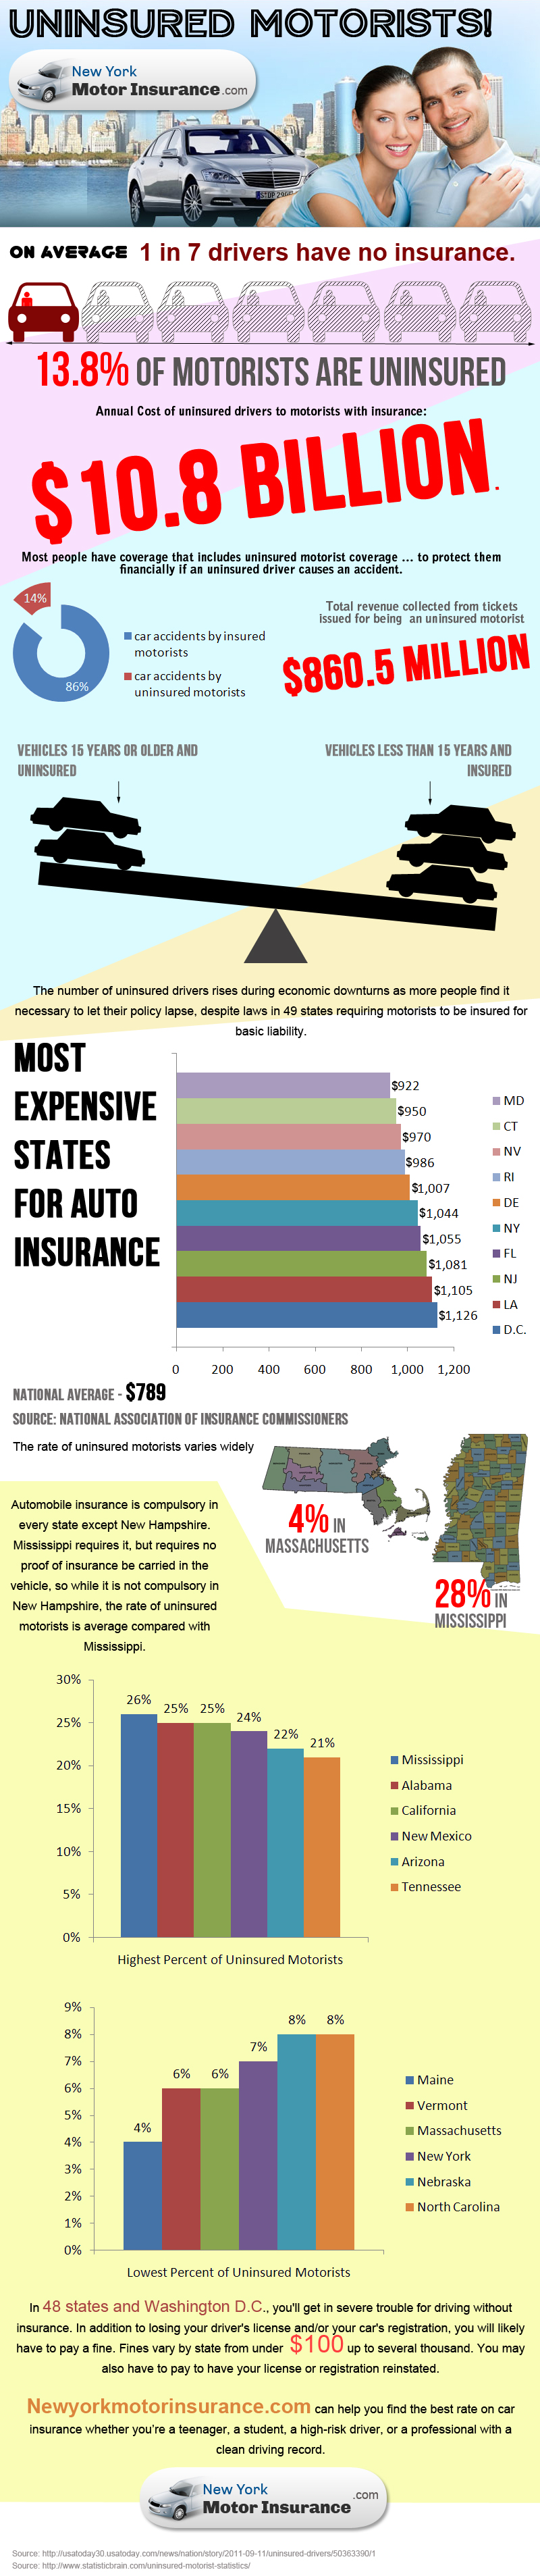 Uninsured Motorists!